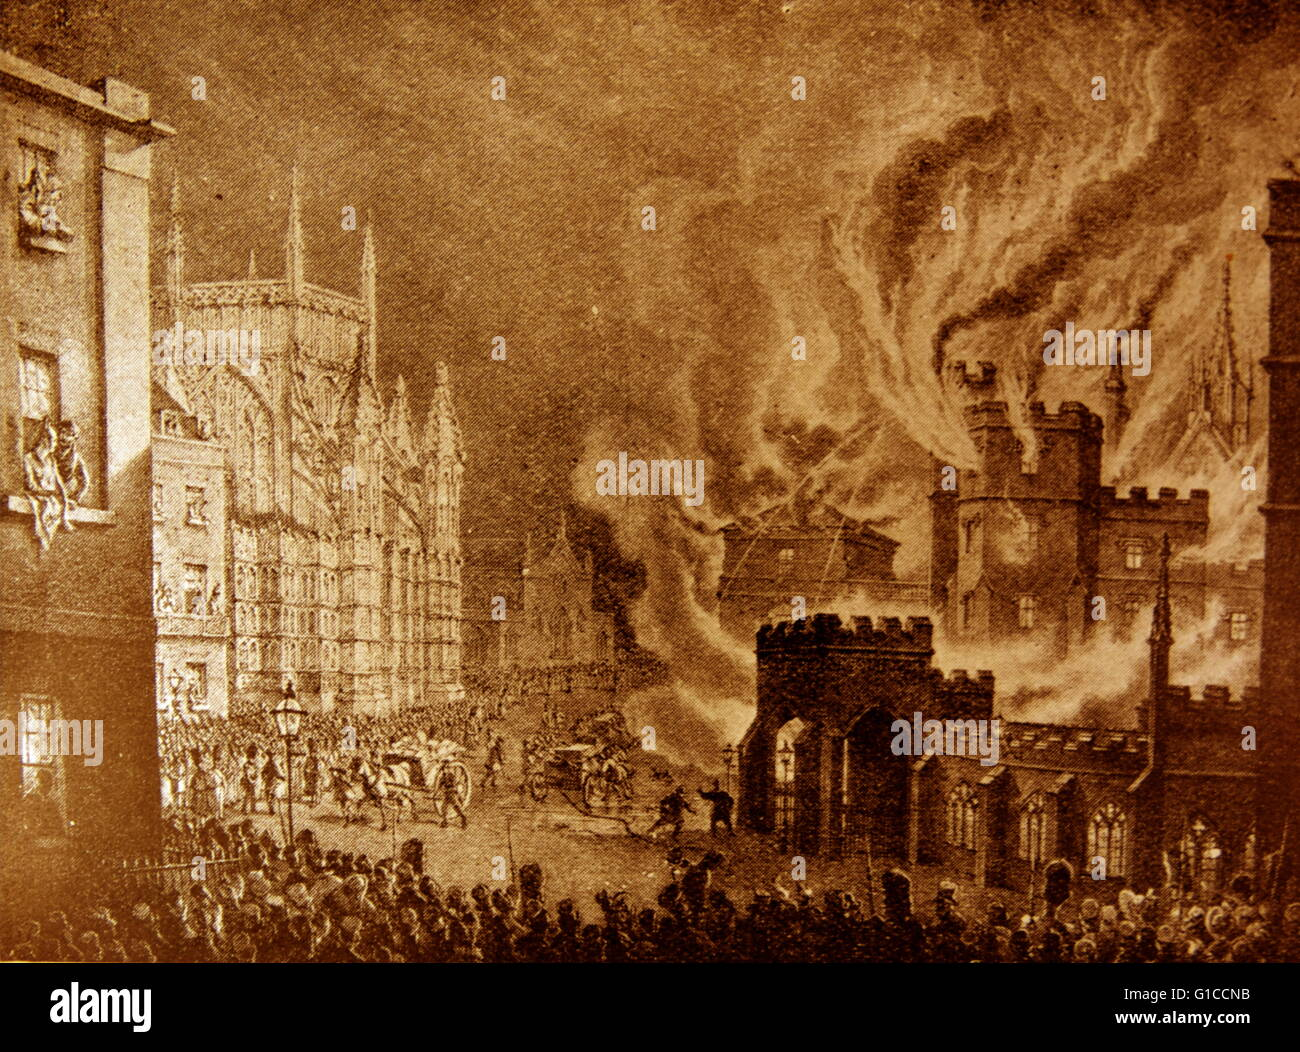 Engraving depicting the destruction of the Houses of Parliament. Dated 1834 - Stock Image